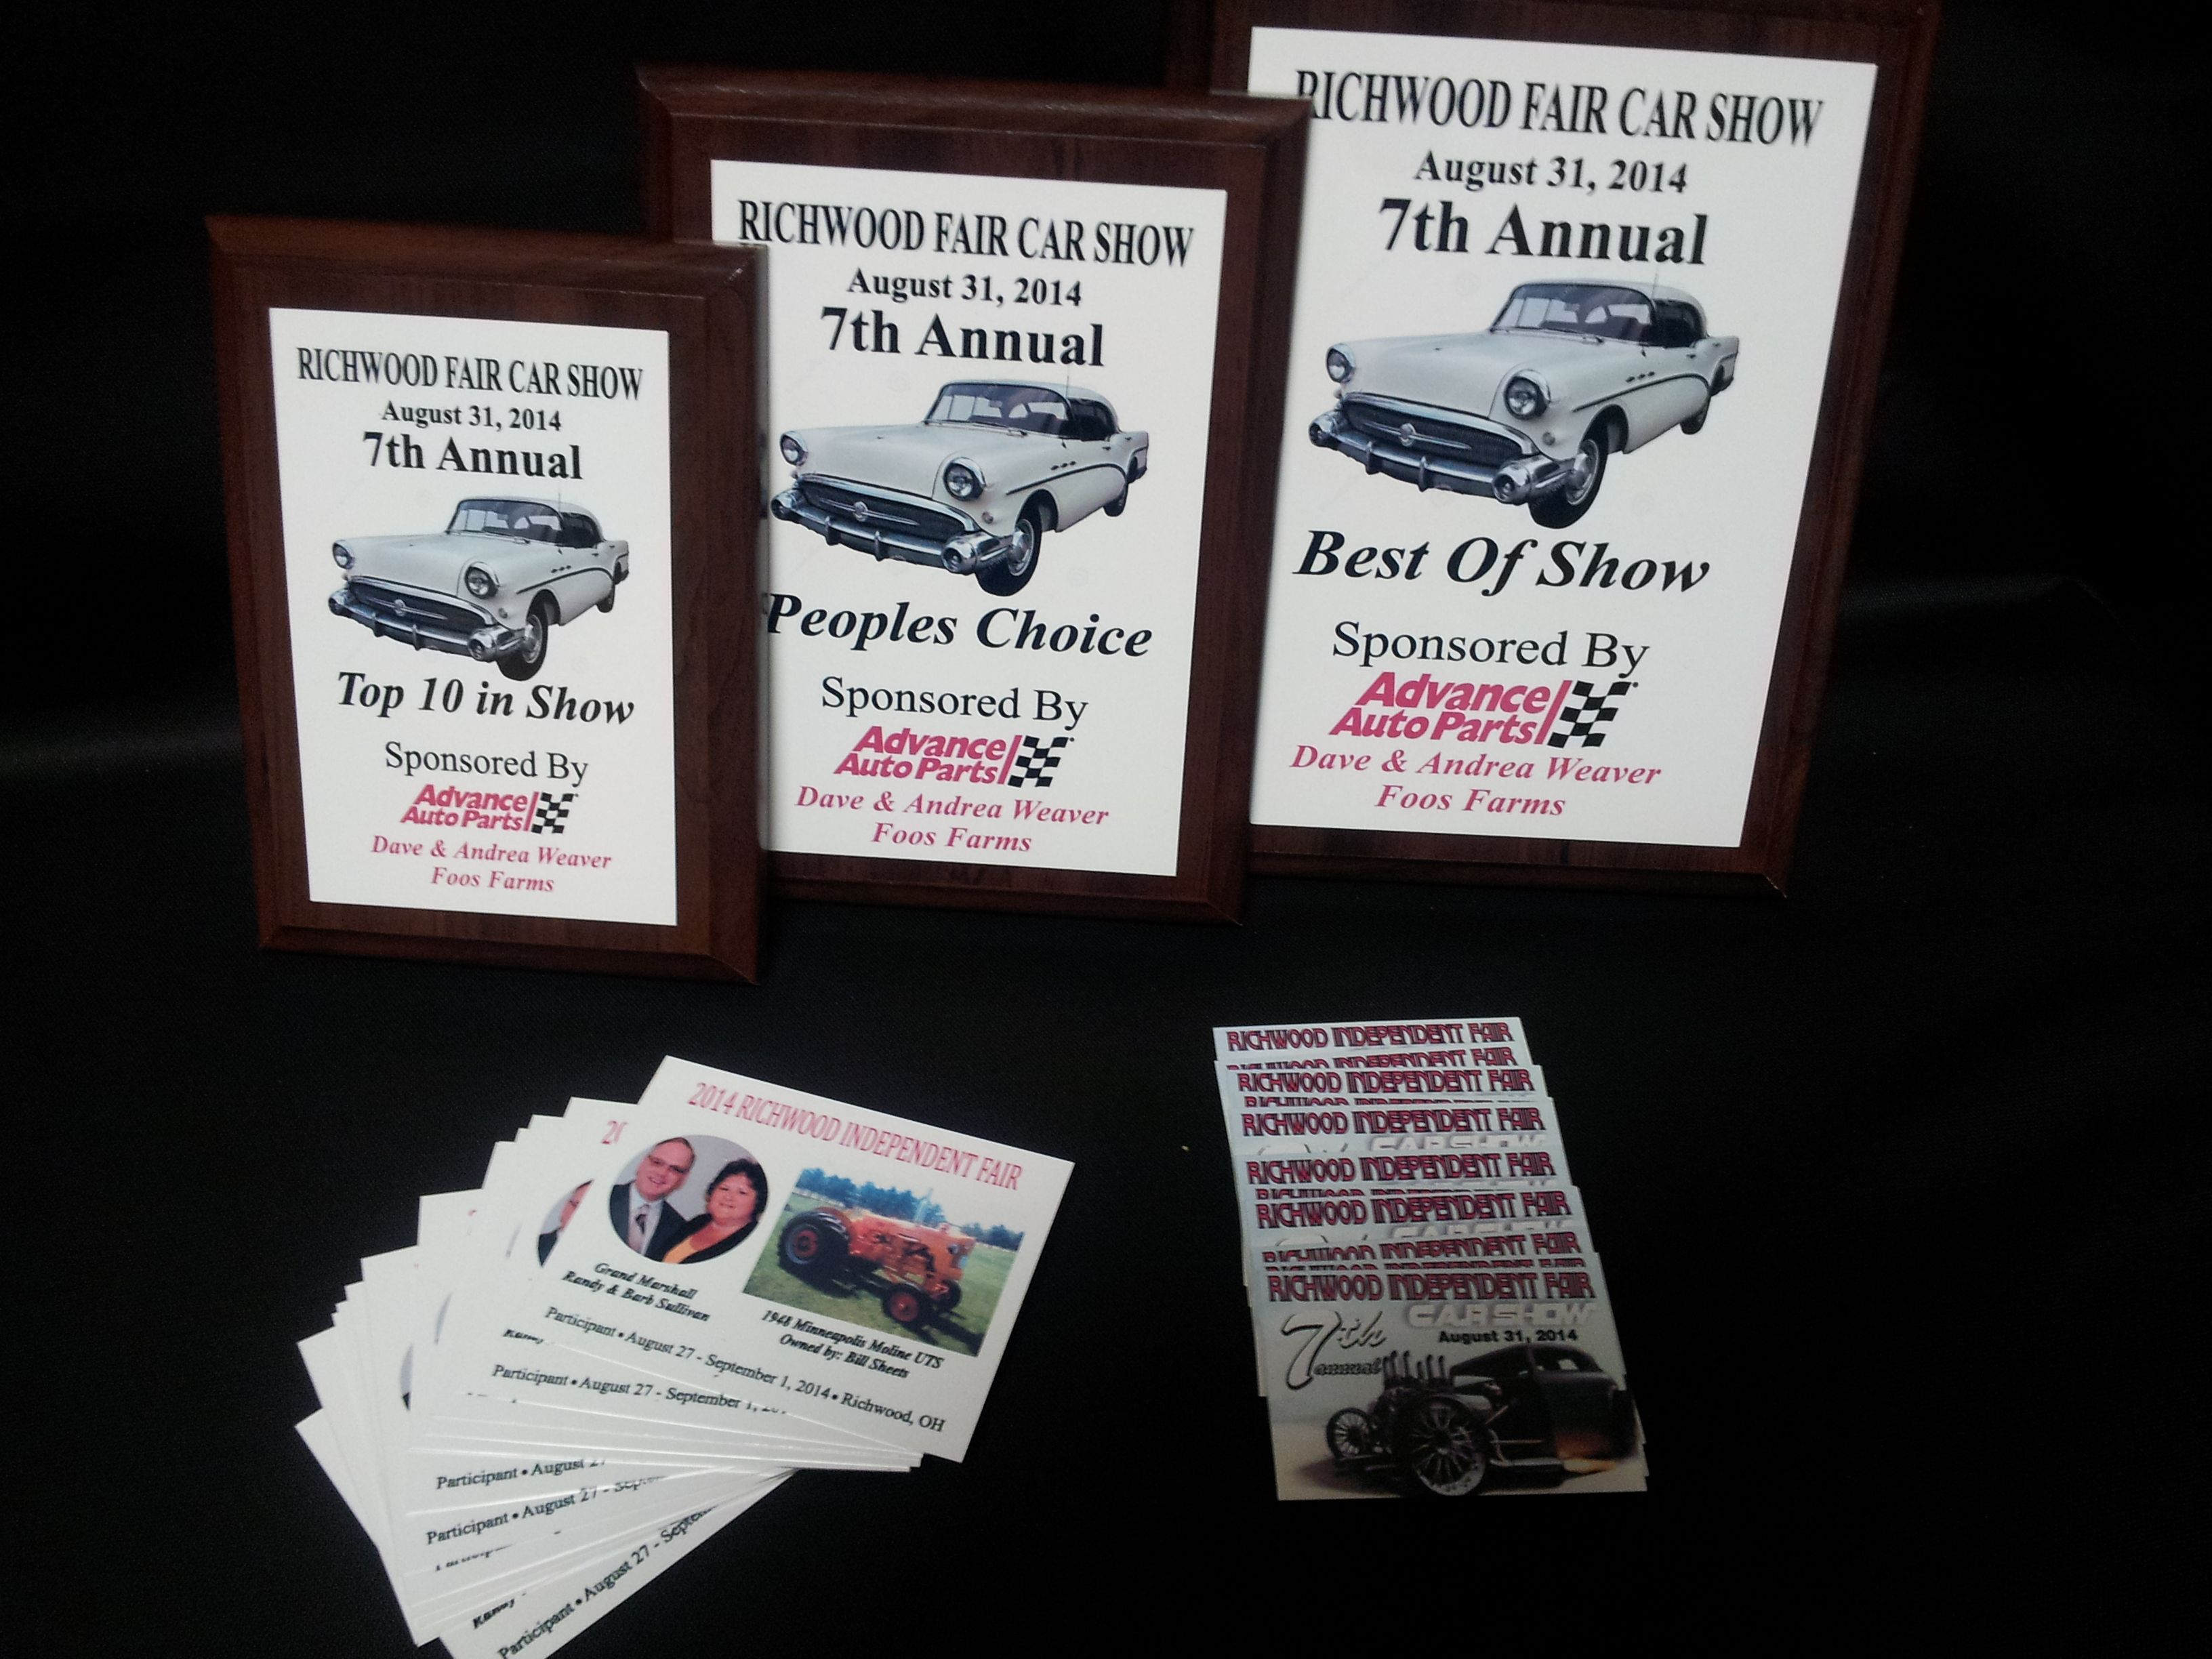 Plaques Tractor Recognition Awards And Car Show Dash Plaques All - Car show plaques